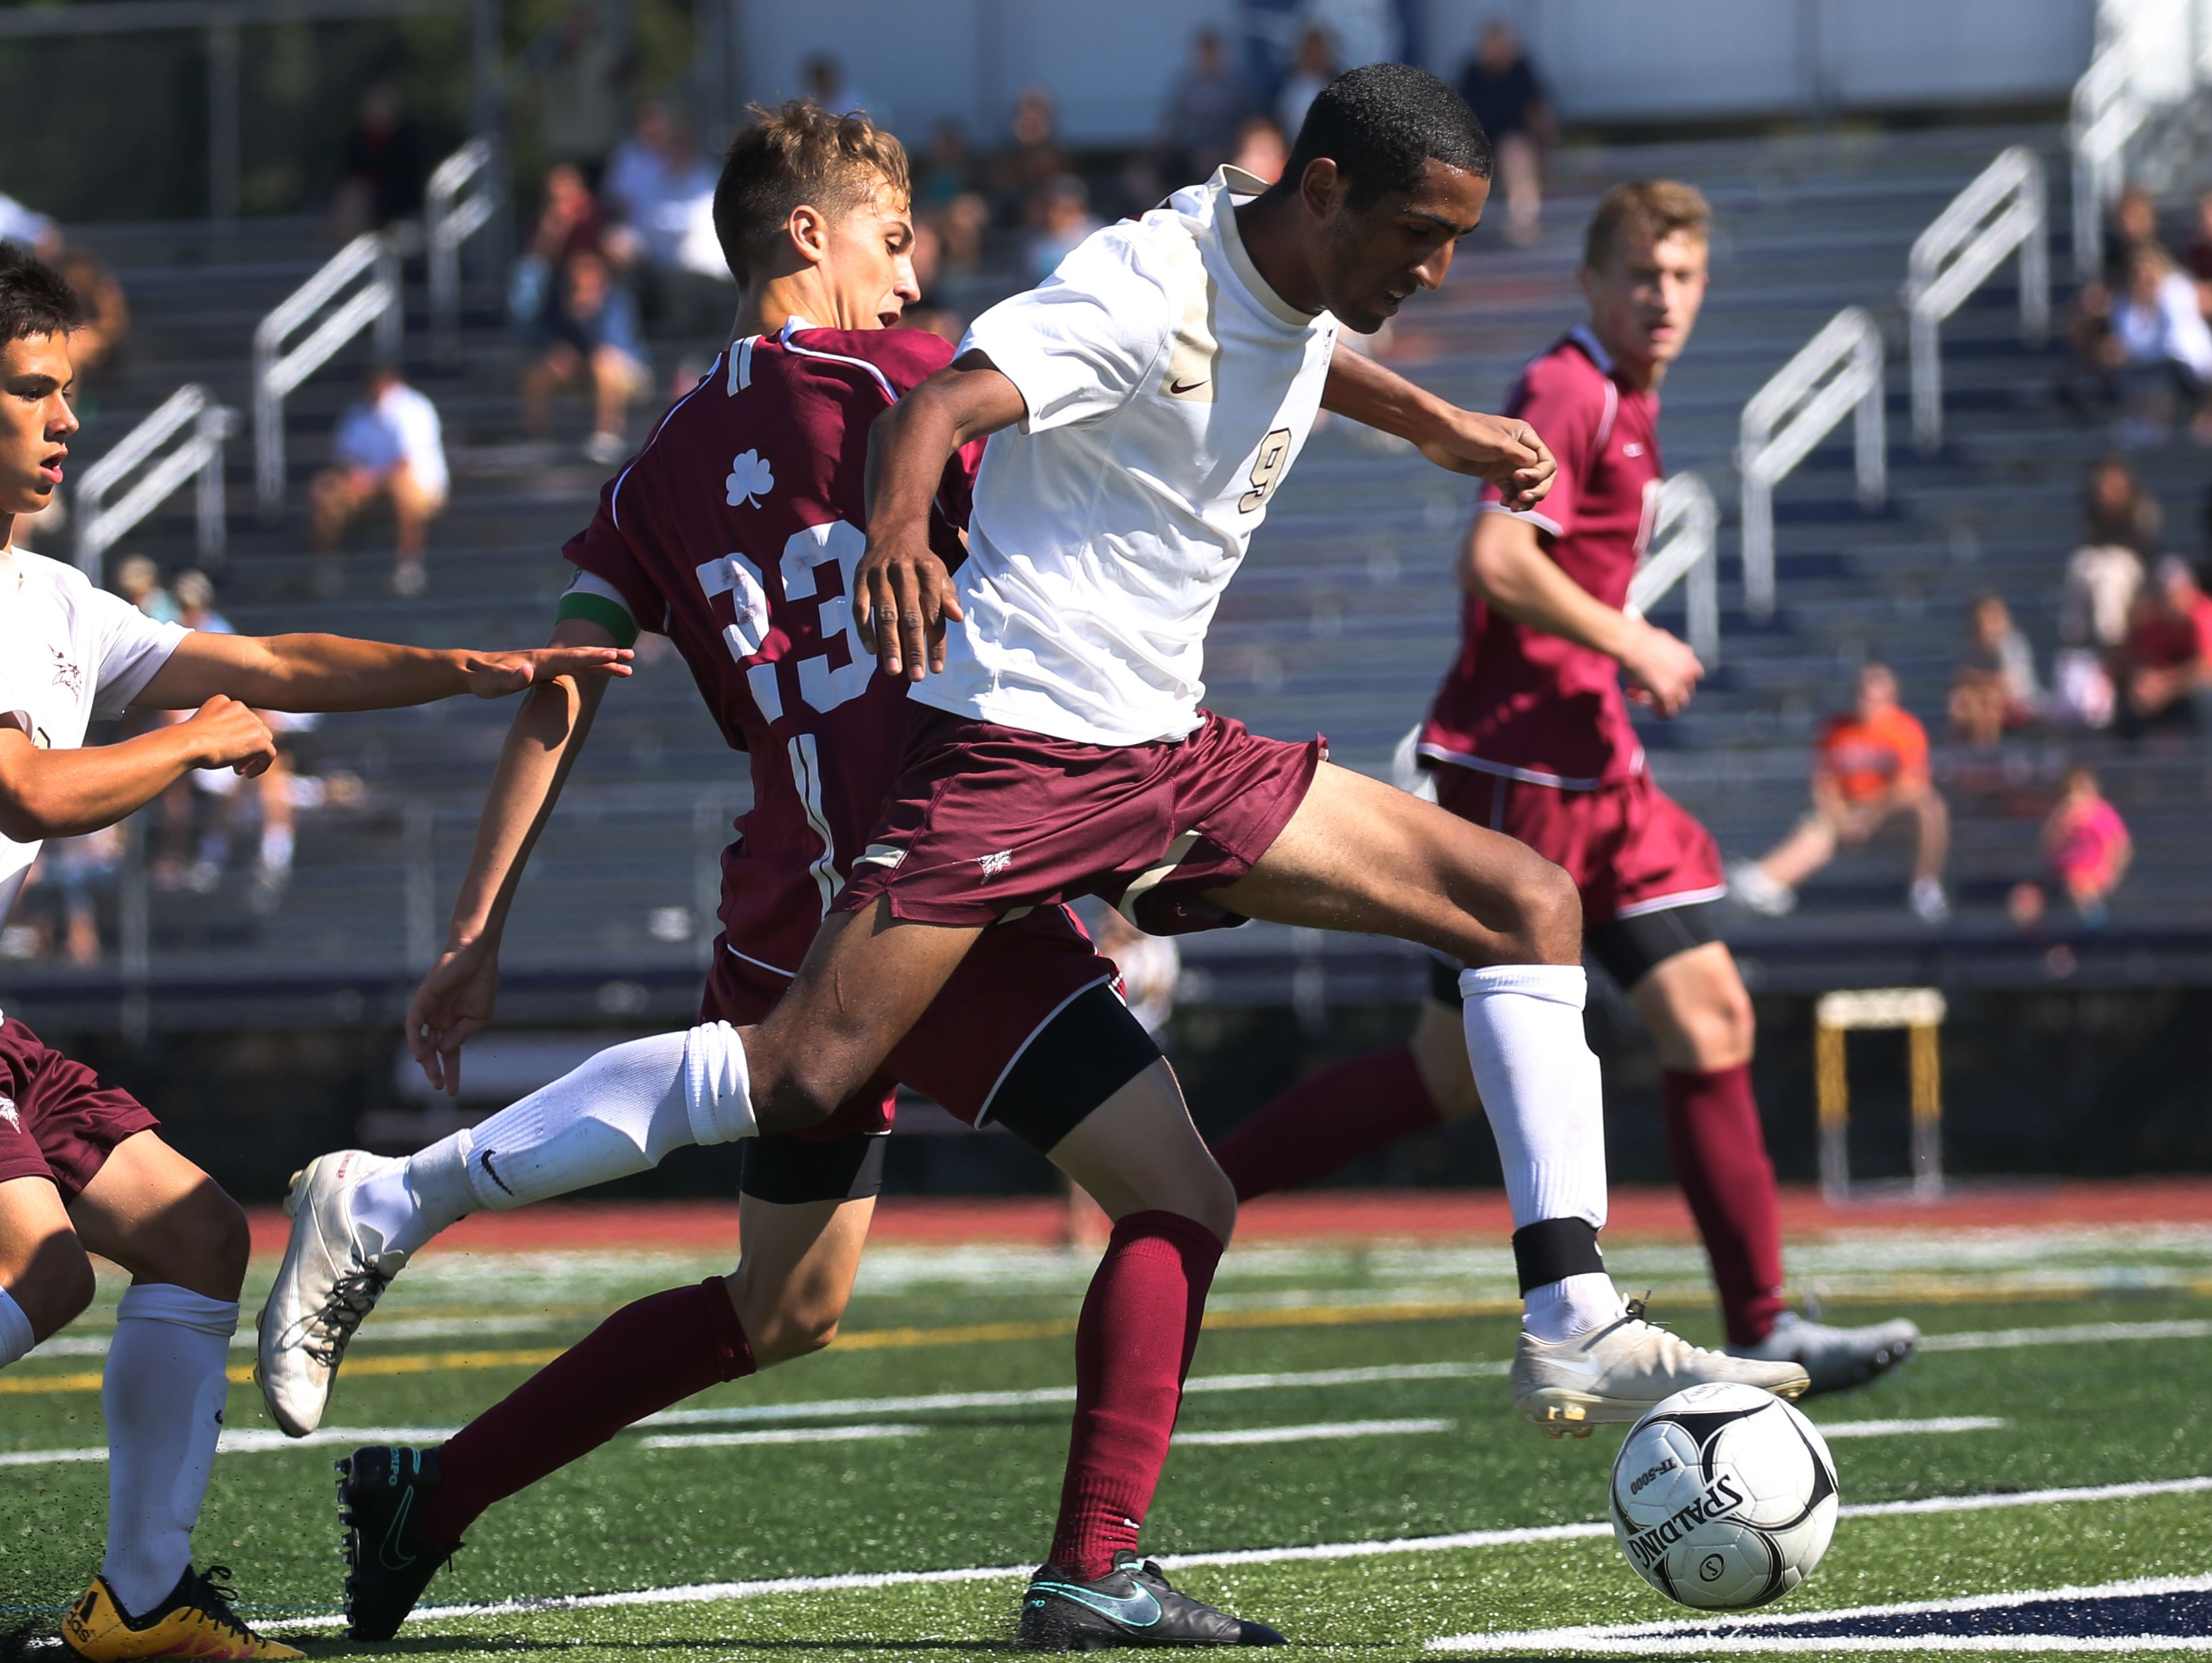 Adrian Padilla during the Pittsford Mendon soccer teams first game of the season against Aquinas.